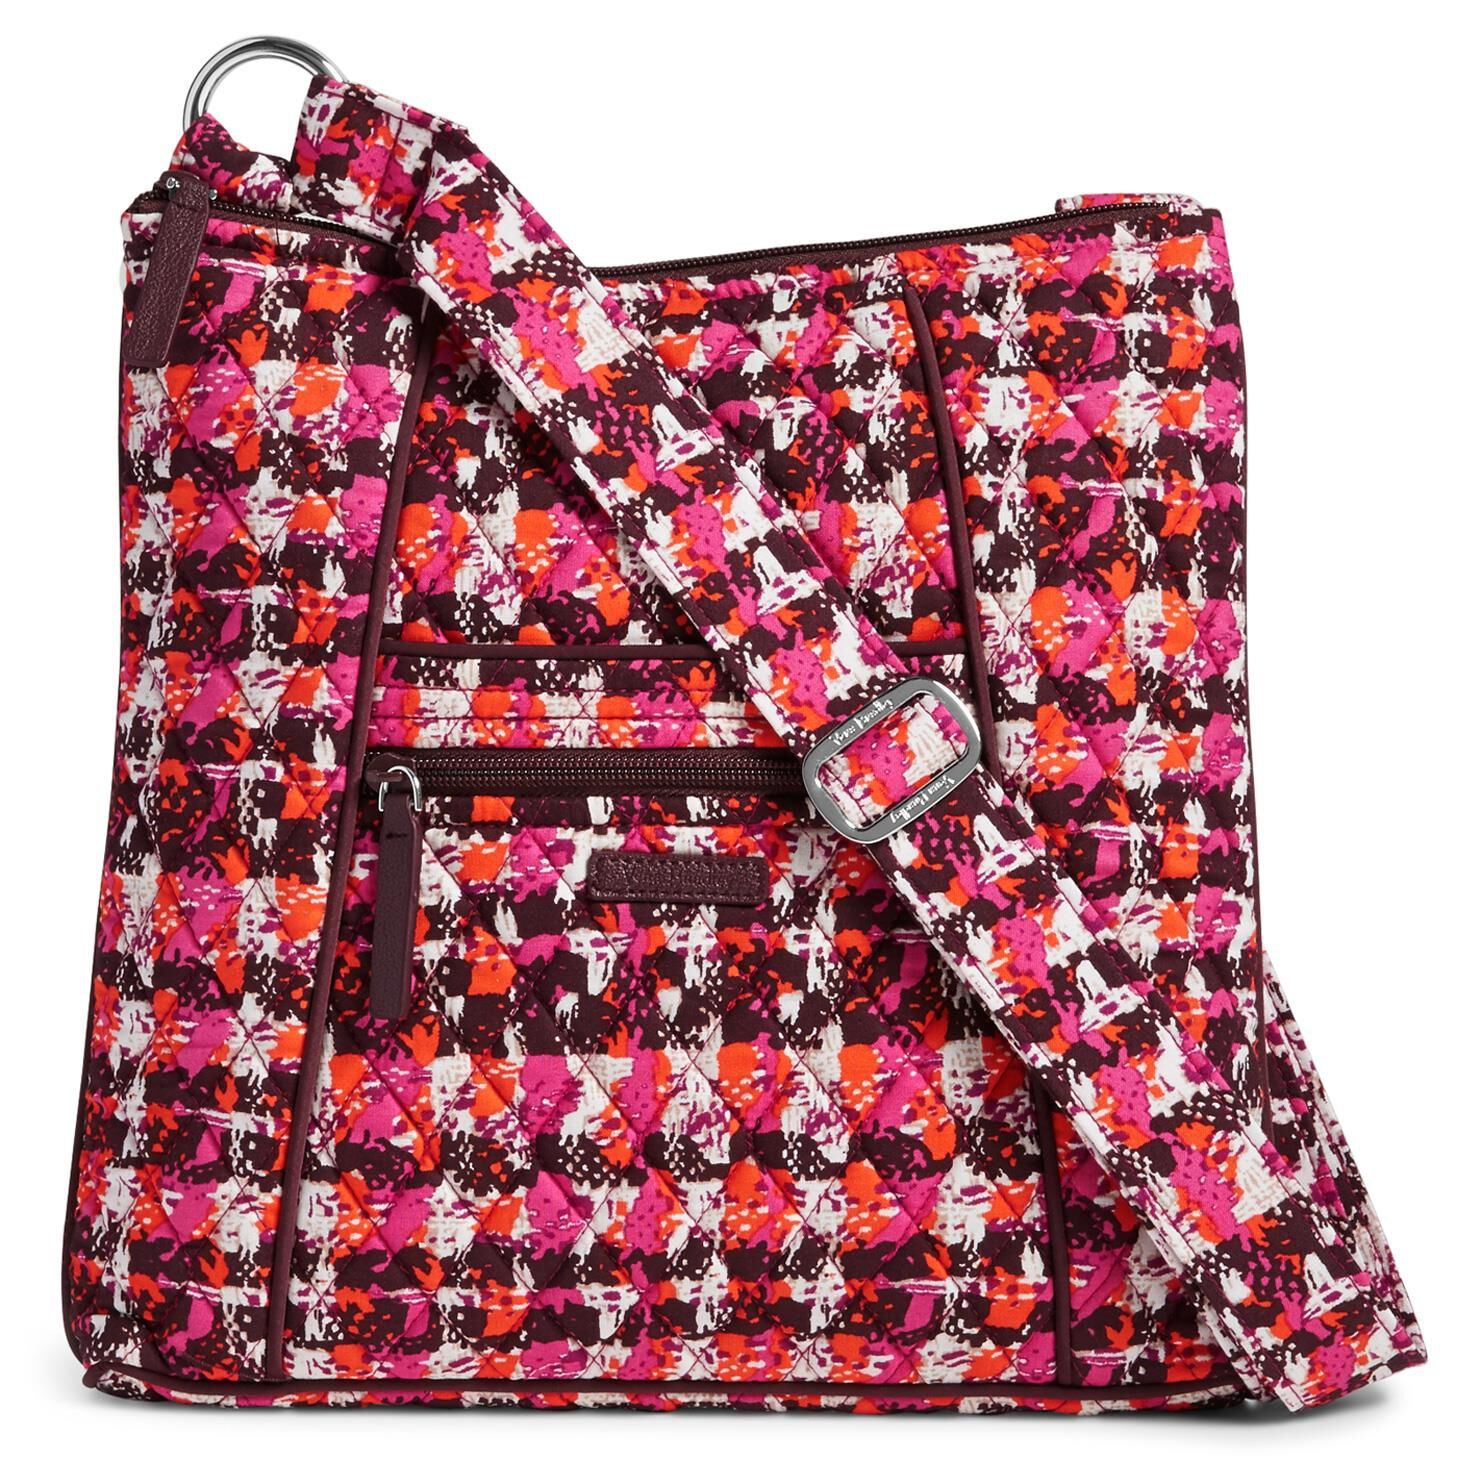 Vera Bradley Hipster Crossbody Bag In Houndstooth Tweed